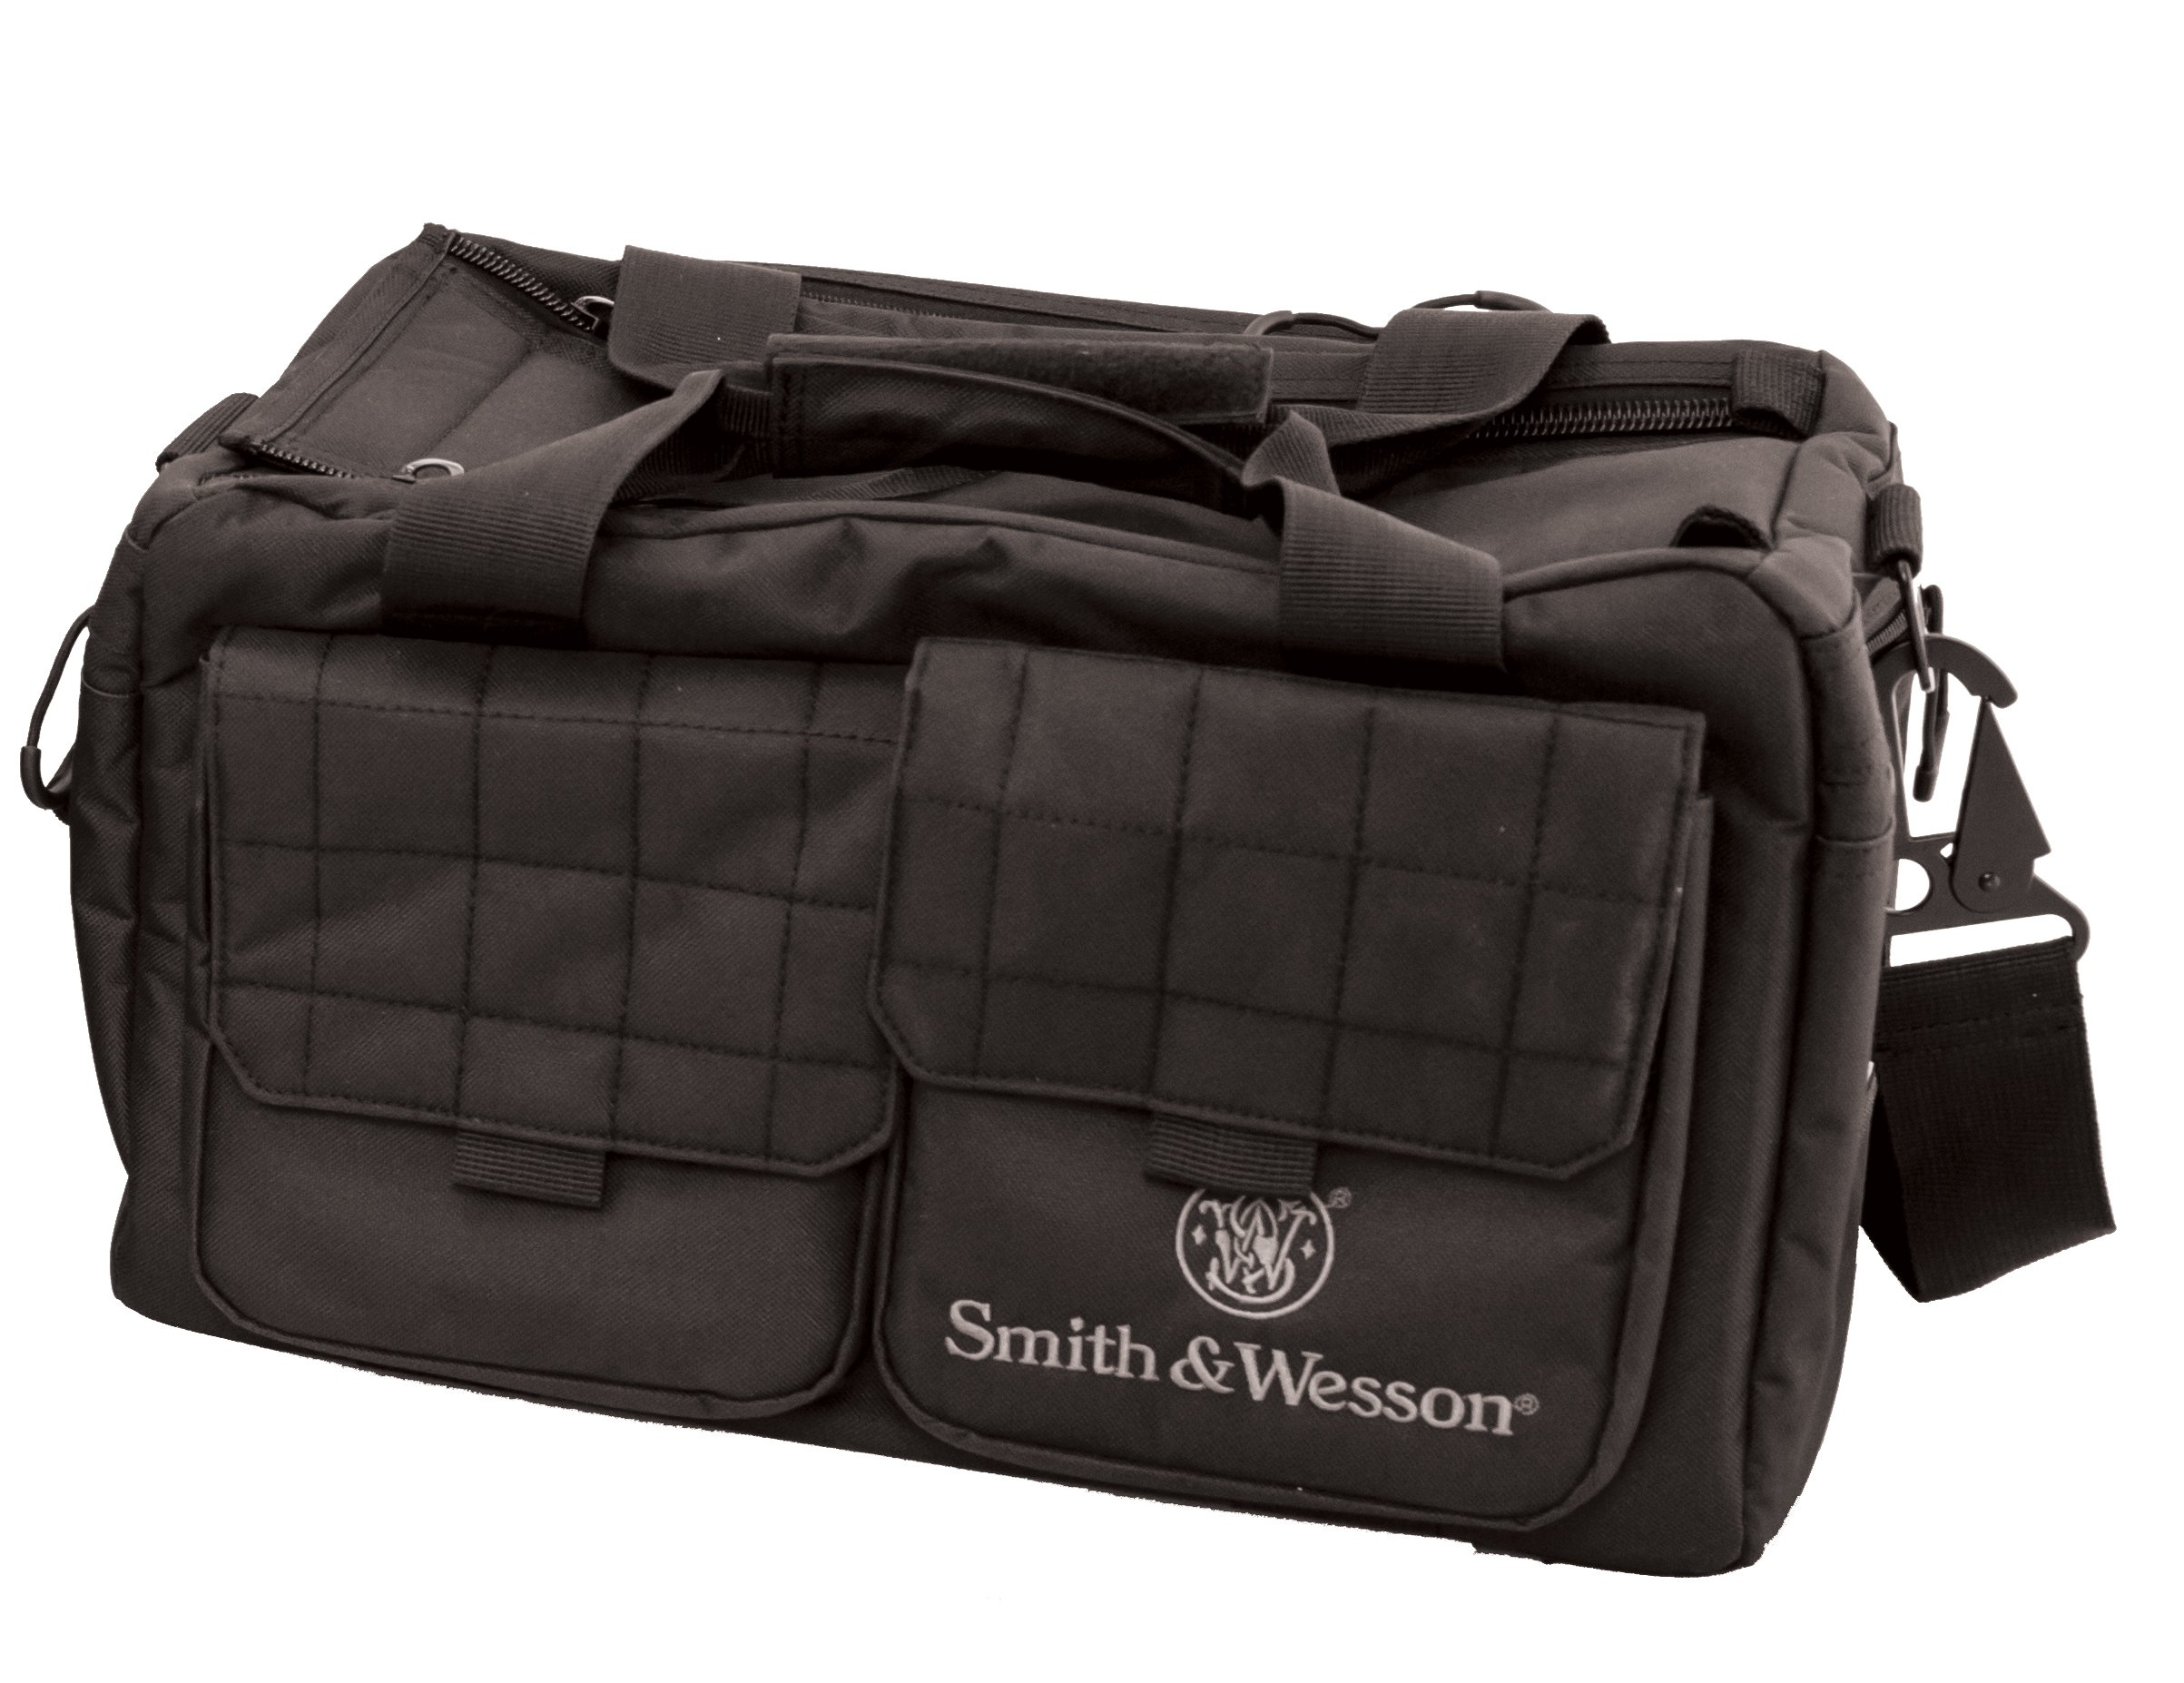 Smith & Wesson M&P Recruit Tactical Range Bag with Weather Resistant Material for Shooting, Range, Storage and Transport by SMITH & WESSON